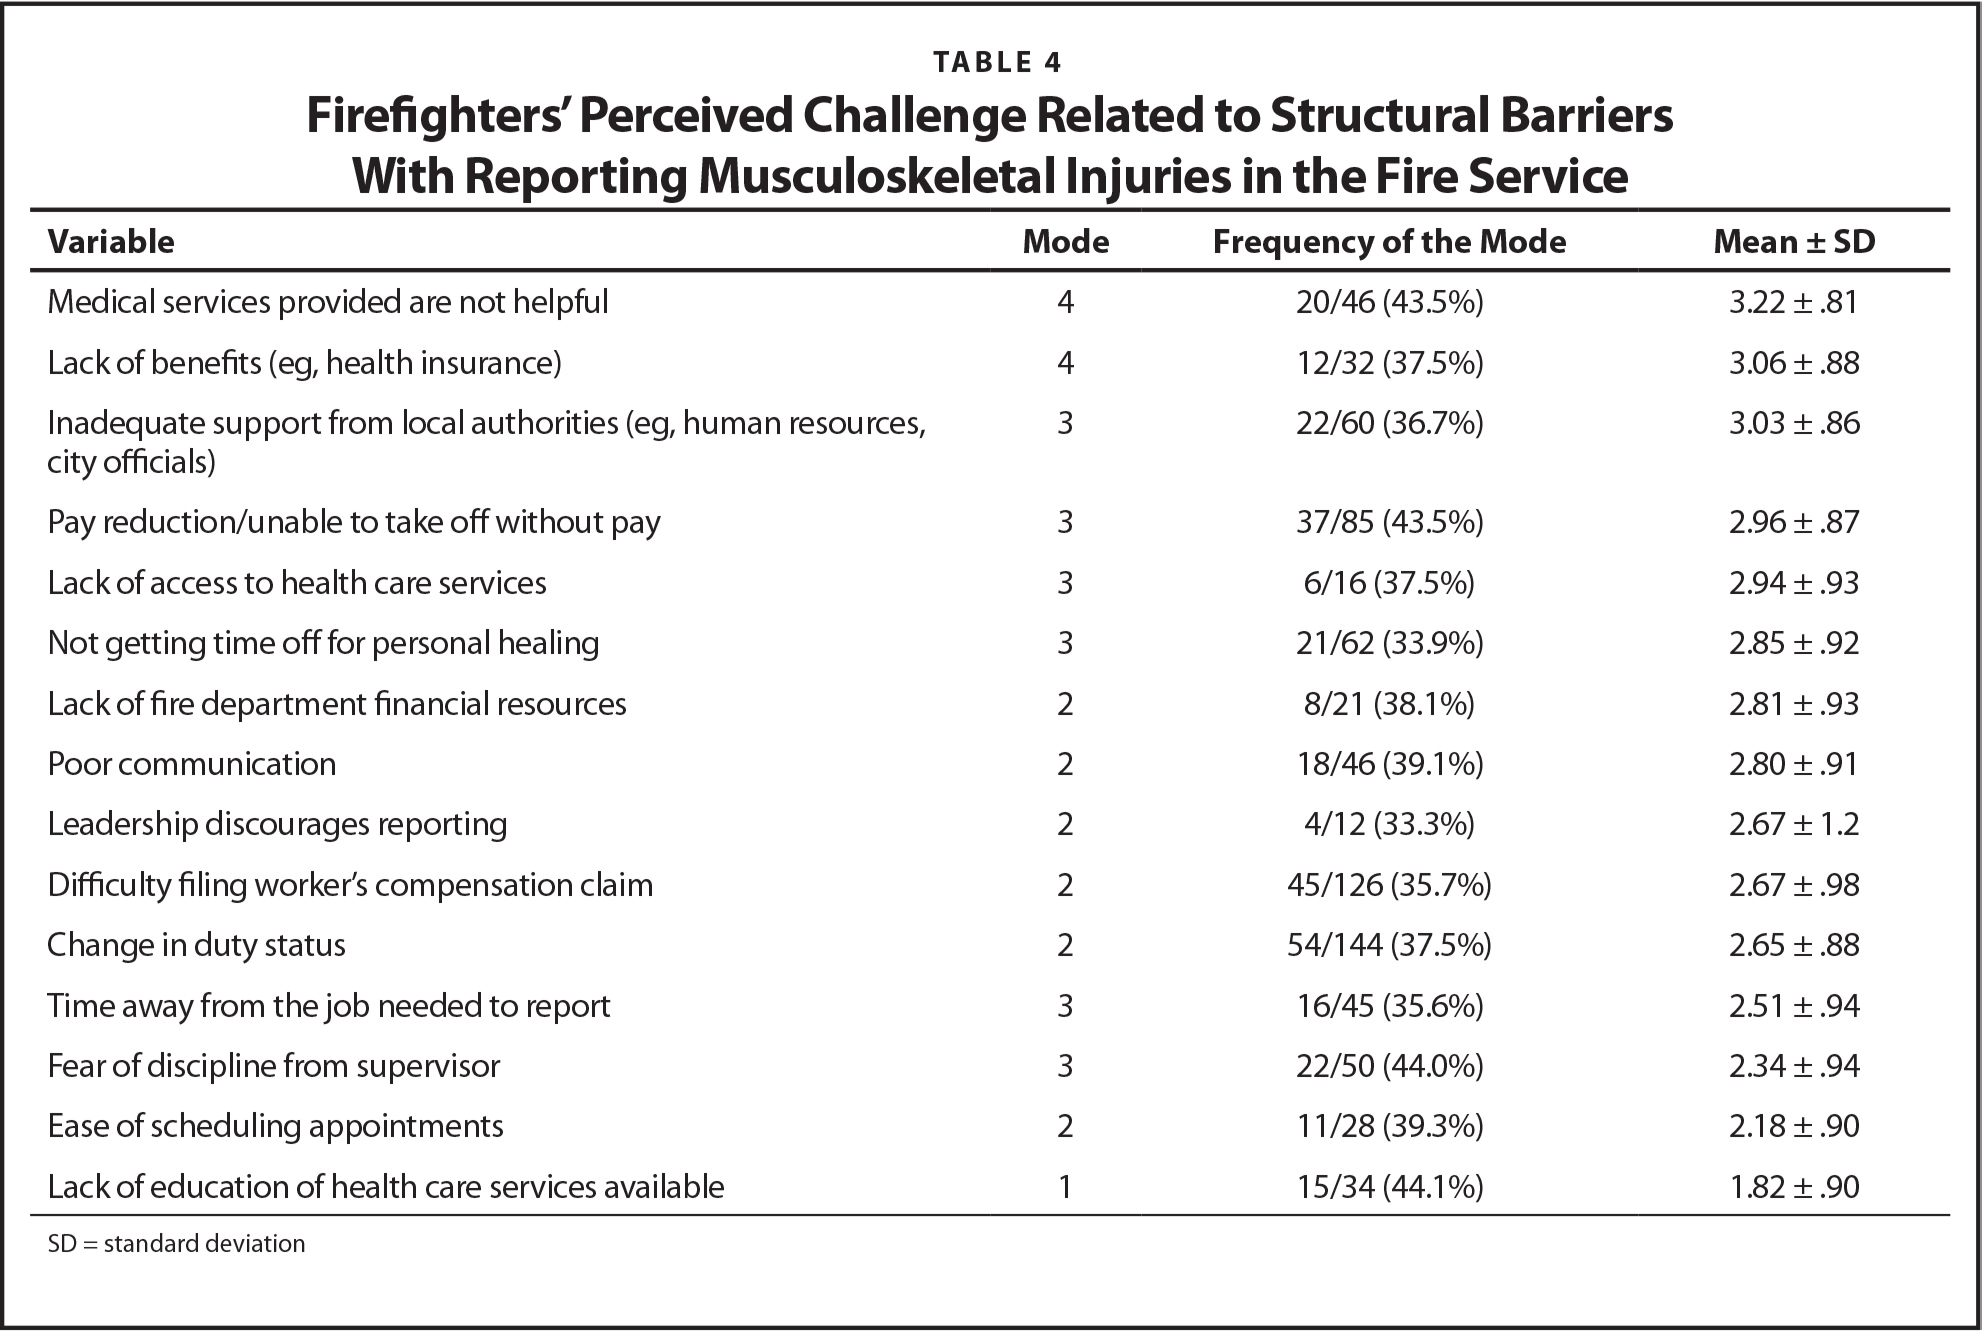 Firefighters' Perceived Challenge Related to Structural Barriers With Reporting Musculoskeletal Injuries in the Fire Service